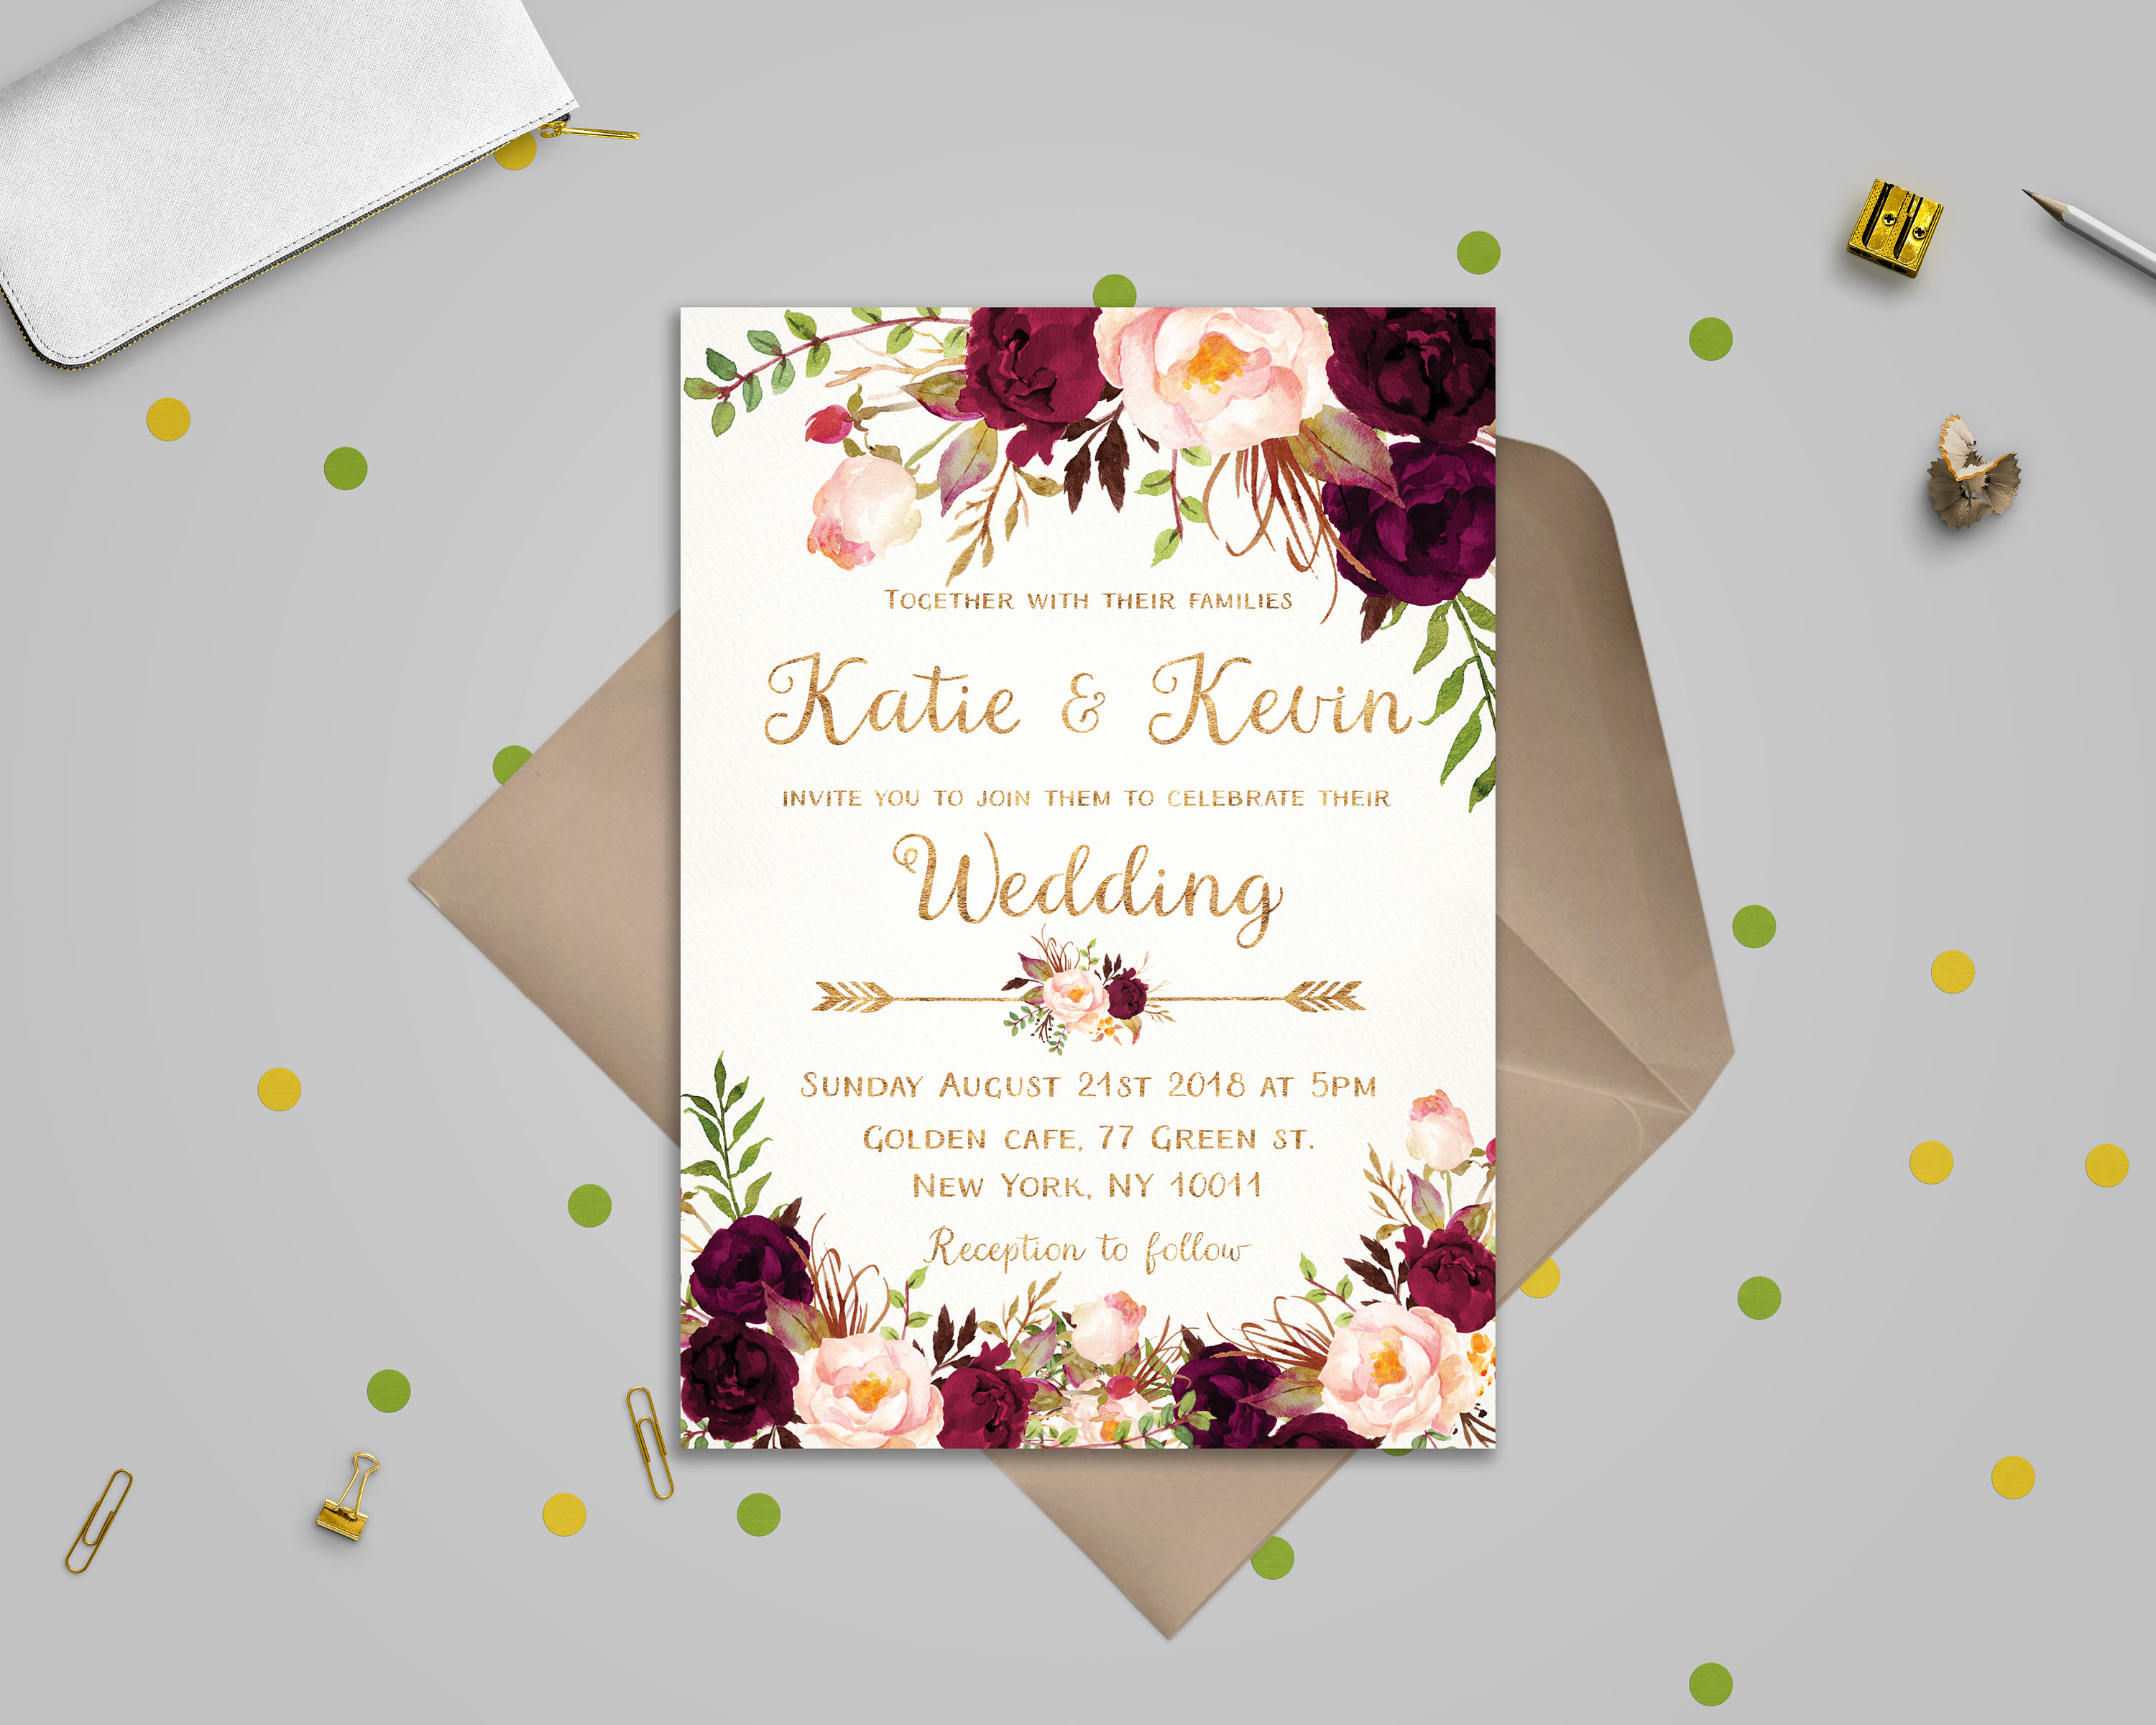 Wedding Invitation Templates Free Luxury Floral Wedding Invitation Template Wedding Invitation